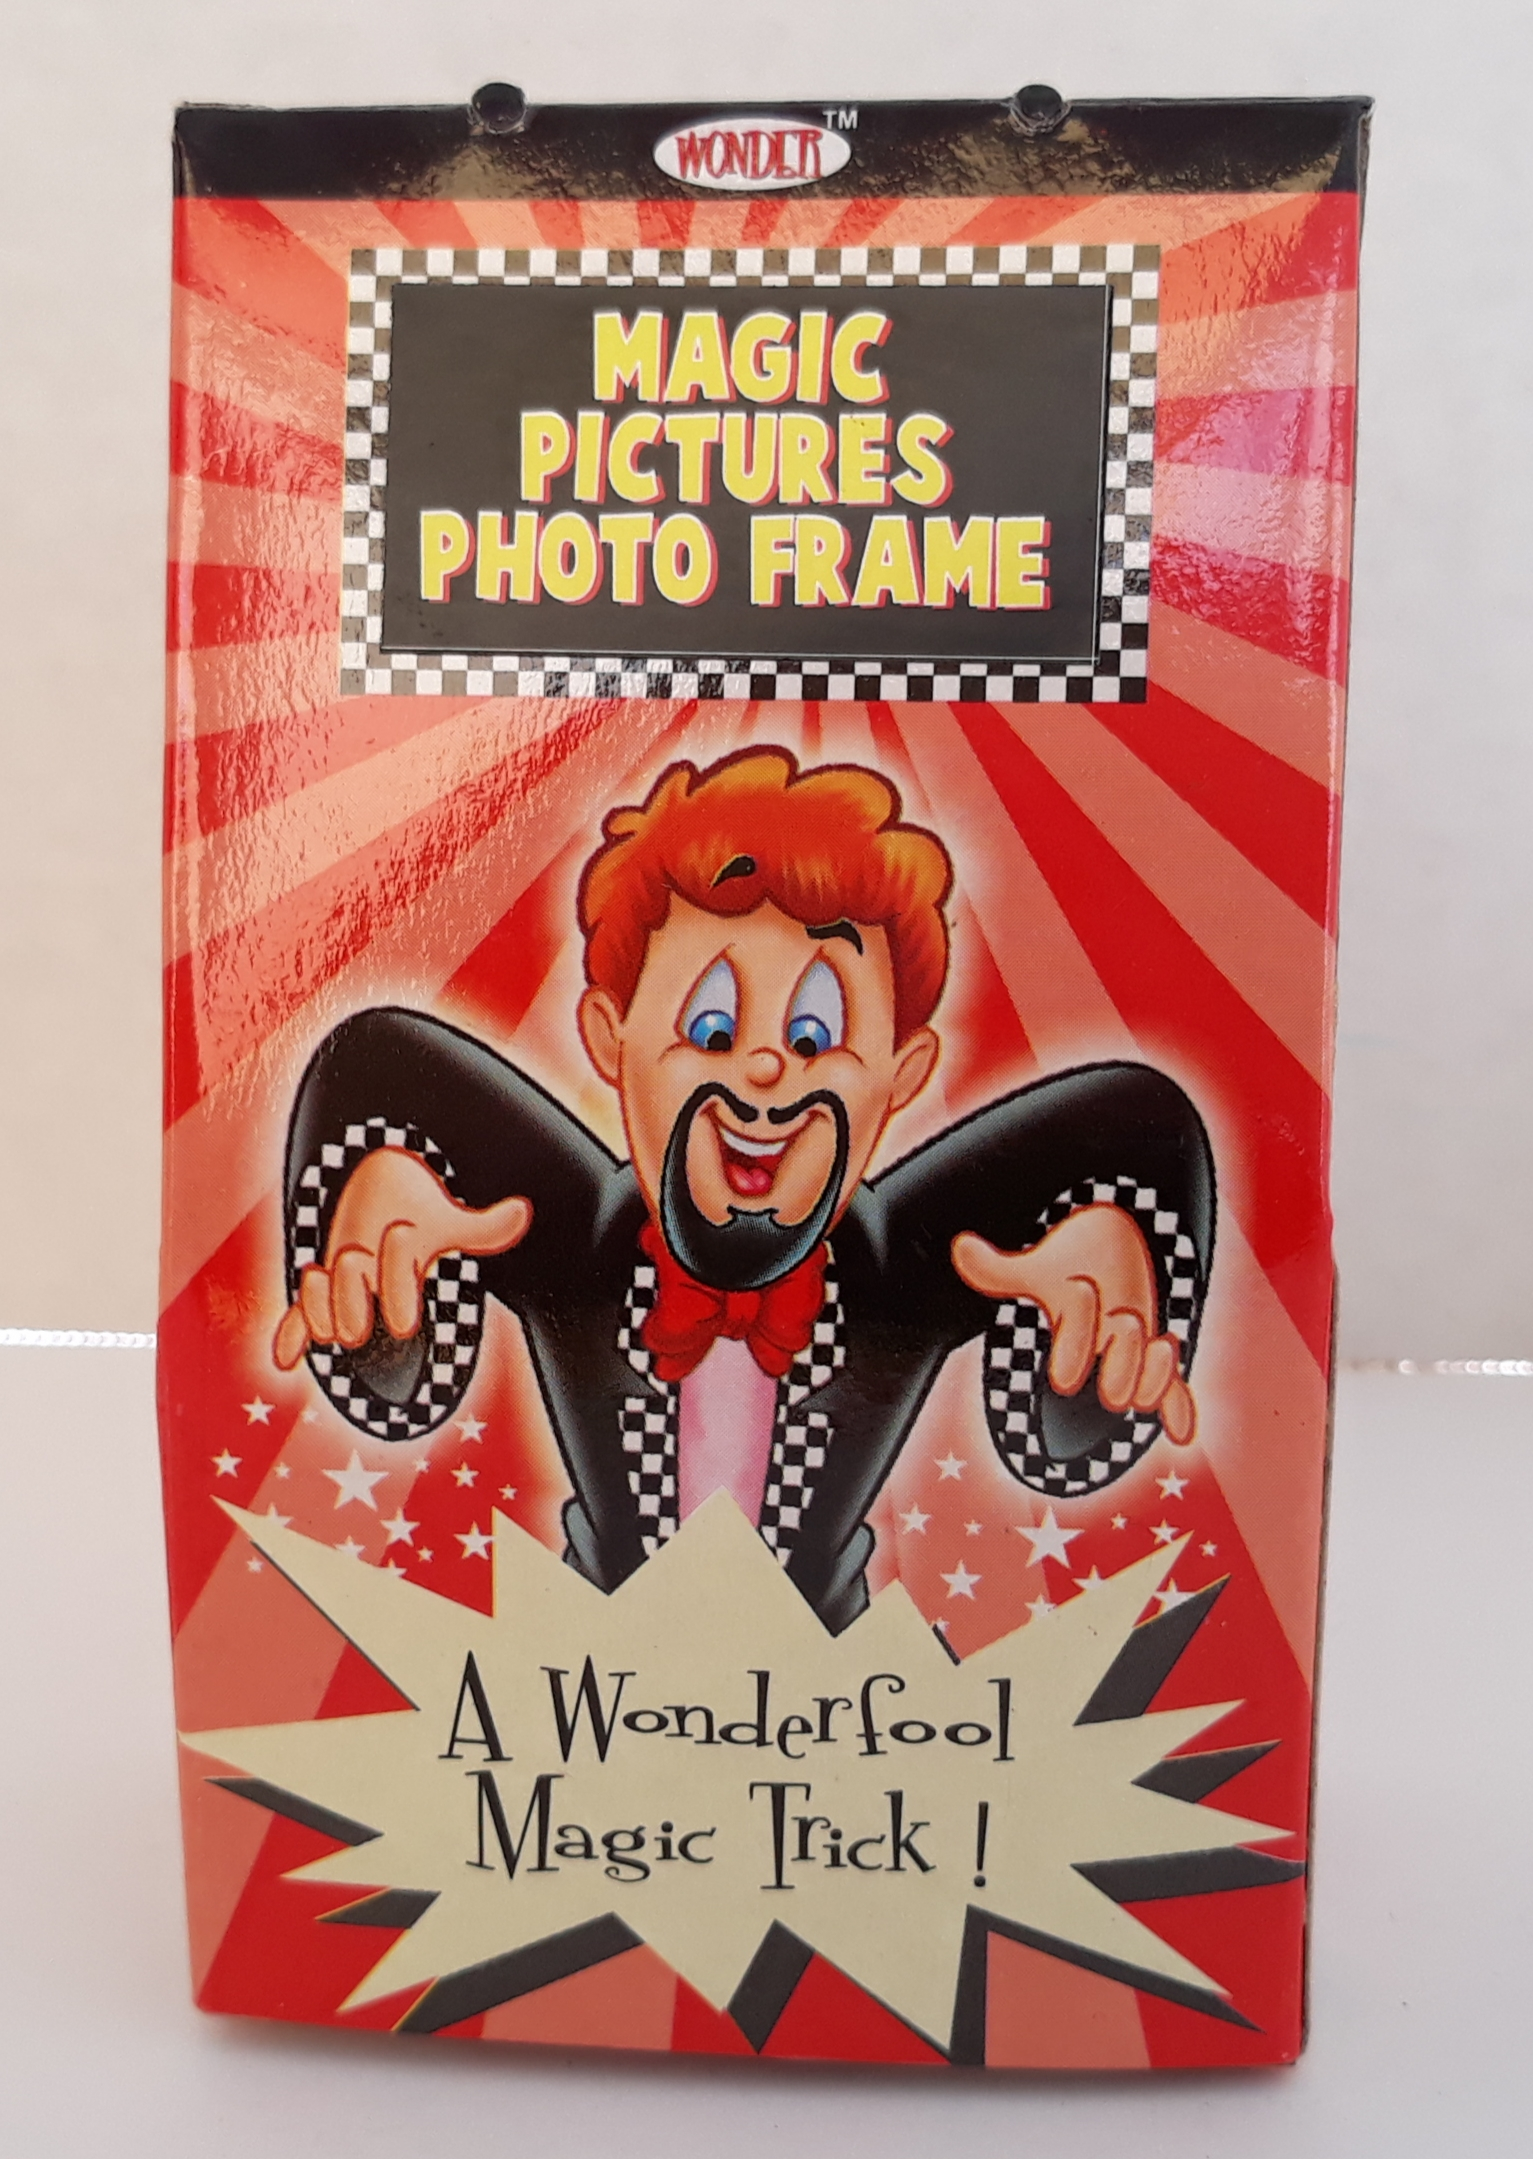 Magic Pictures Photo Frame (Wonder)